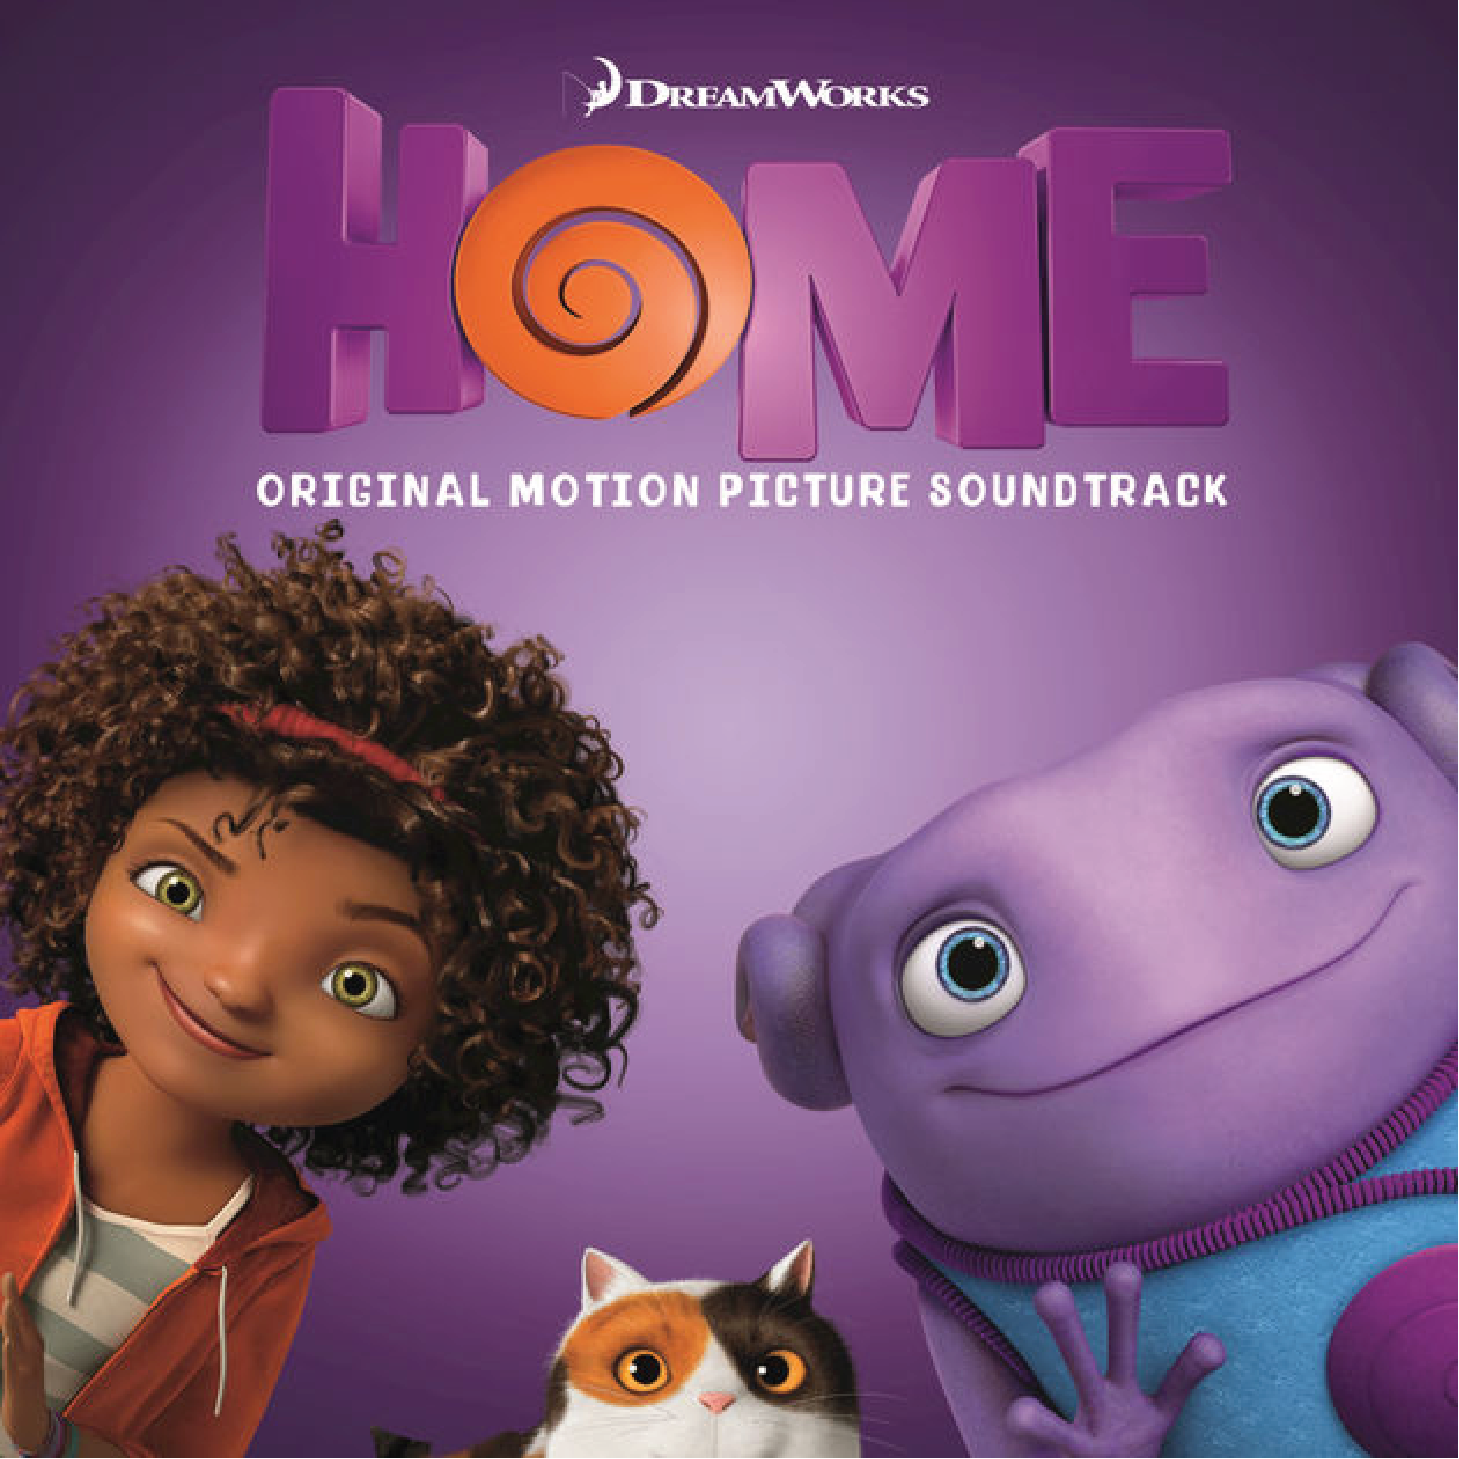 Be sure to check out 'Run To Me' Written and performed by R8D / BMG Chrysalis songwriter Clarence Coffee off the new 'Home' movie soundtrack